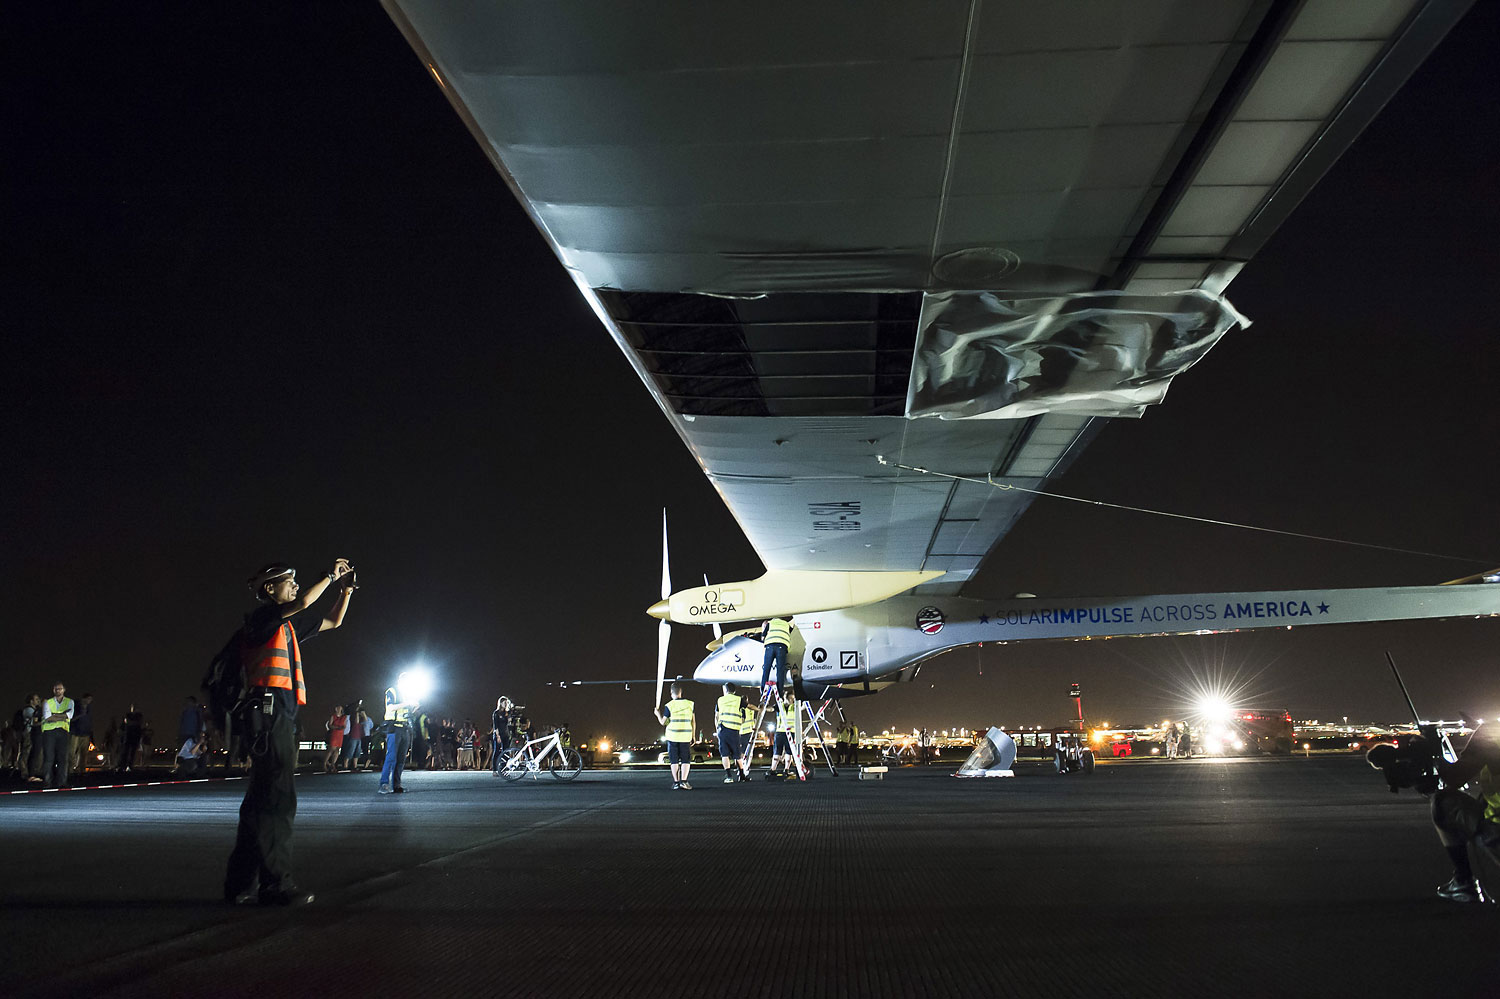 A tear in the wing fabric of the Solar Impulse airplane following landing at John F. Kennedy International Airport in New York, July 6, 2013.